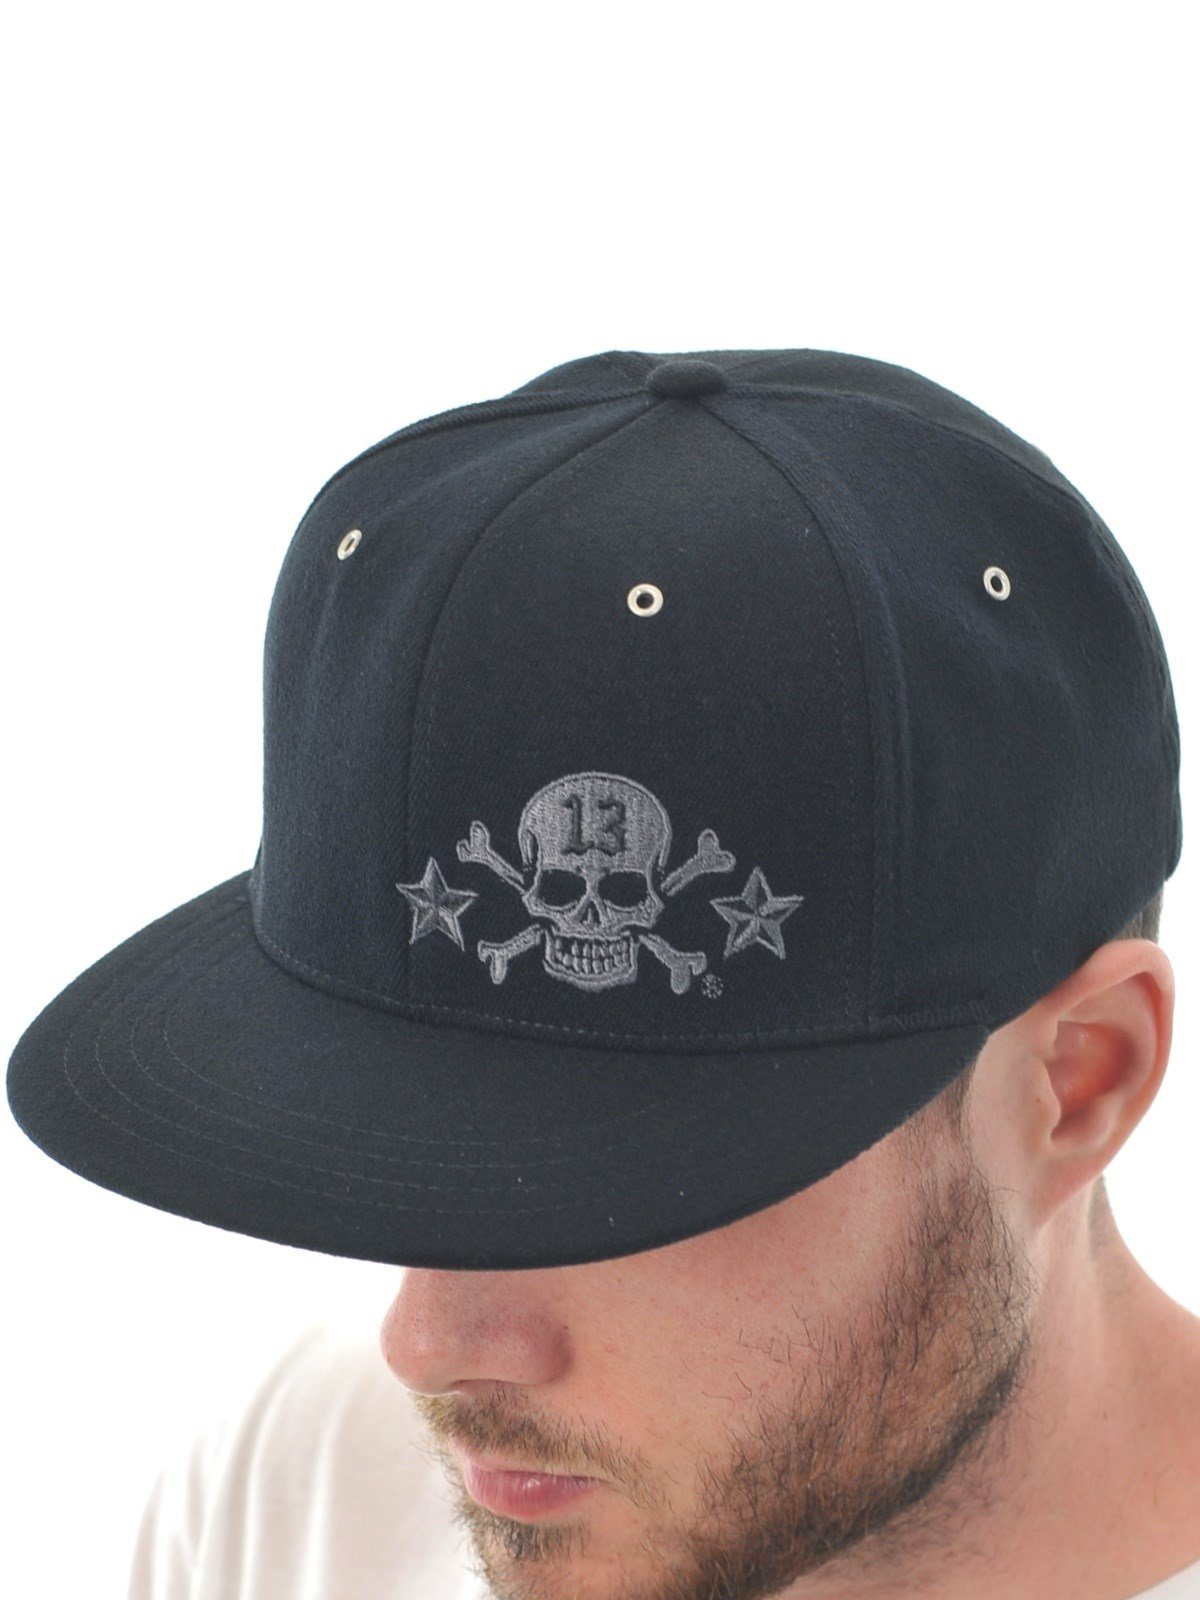 f4c31e61726aa ... switzerland get quotations lucky 13 skull thirteen metal rivet flexfit  hat lctfm8st 1 black black d3cbe